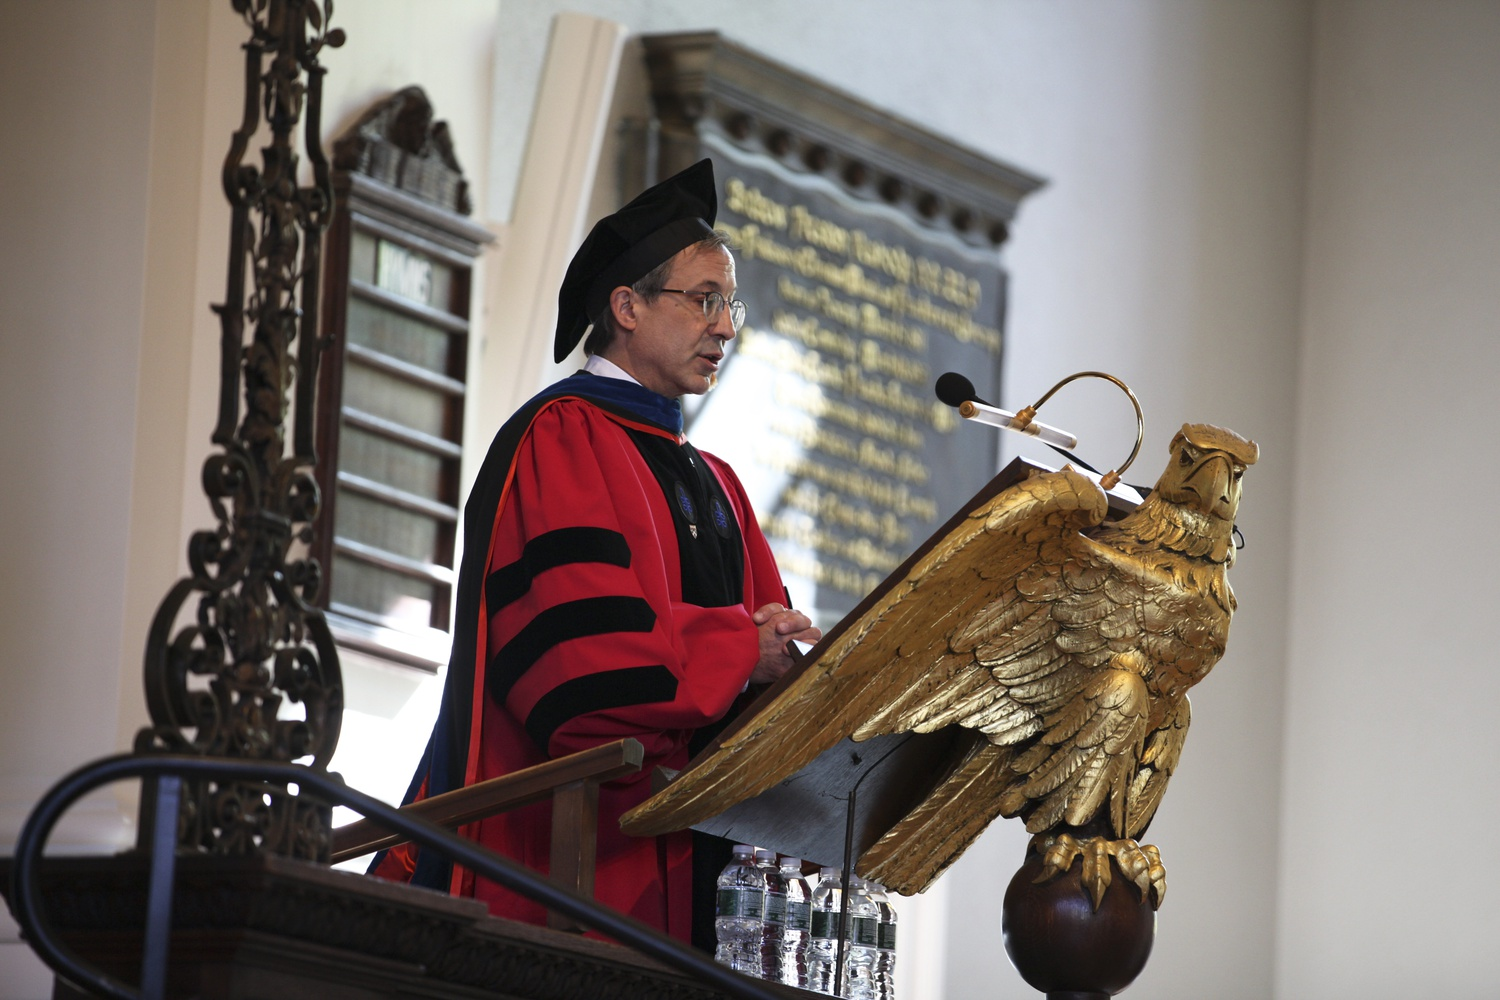 """Dean of Students and Accessibility Robert H. Neugeboren '83 assures students that they """"belong here"""" during Harvard Extension School's Convocation held at Memorial Church Saturday afternoon."""